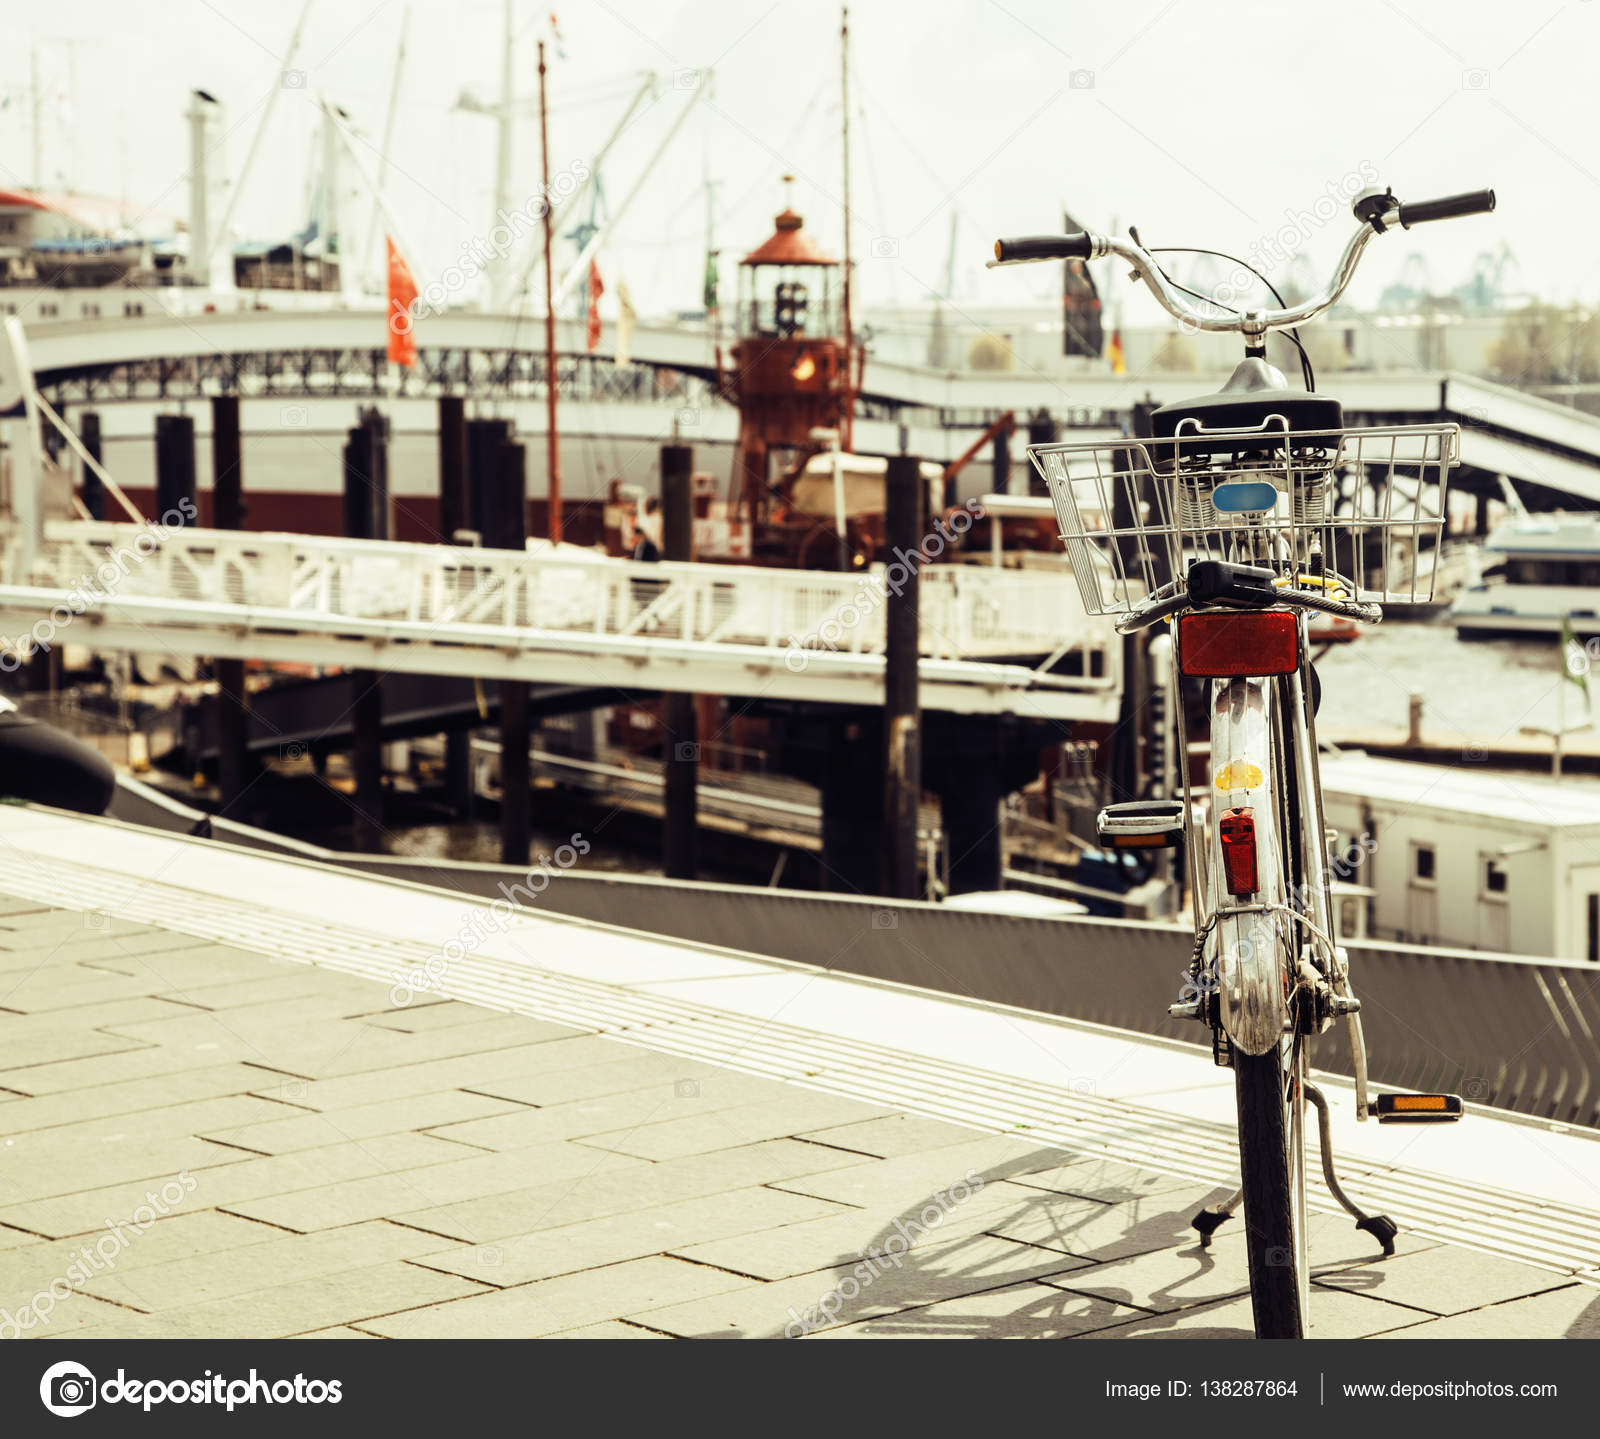 Stock photo hamburg germany riverside new - Post Card City View From Vintage Bicycle Riverside Germany Hamburg Close Up Port Photo By Iordani